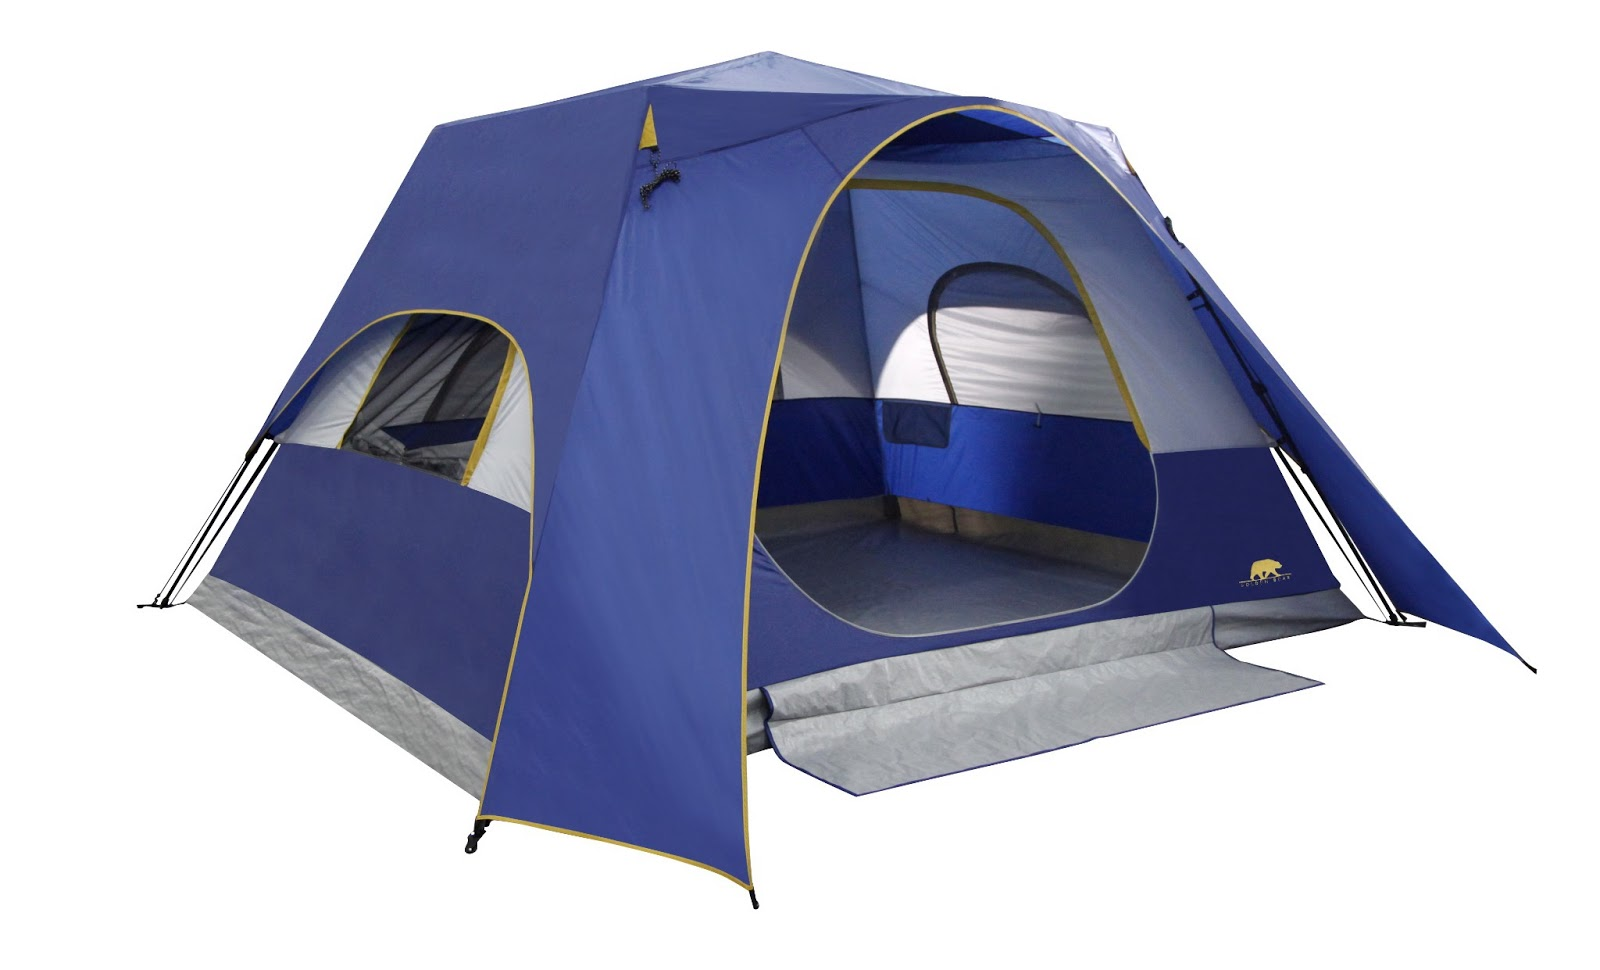 The full-featured Big Agnes Copper Spur HV UL 1 tent is designed with a high-volume hub to maximize strength and increase living space without adding weight. Available at REI.